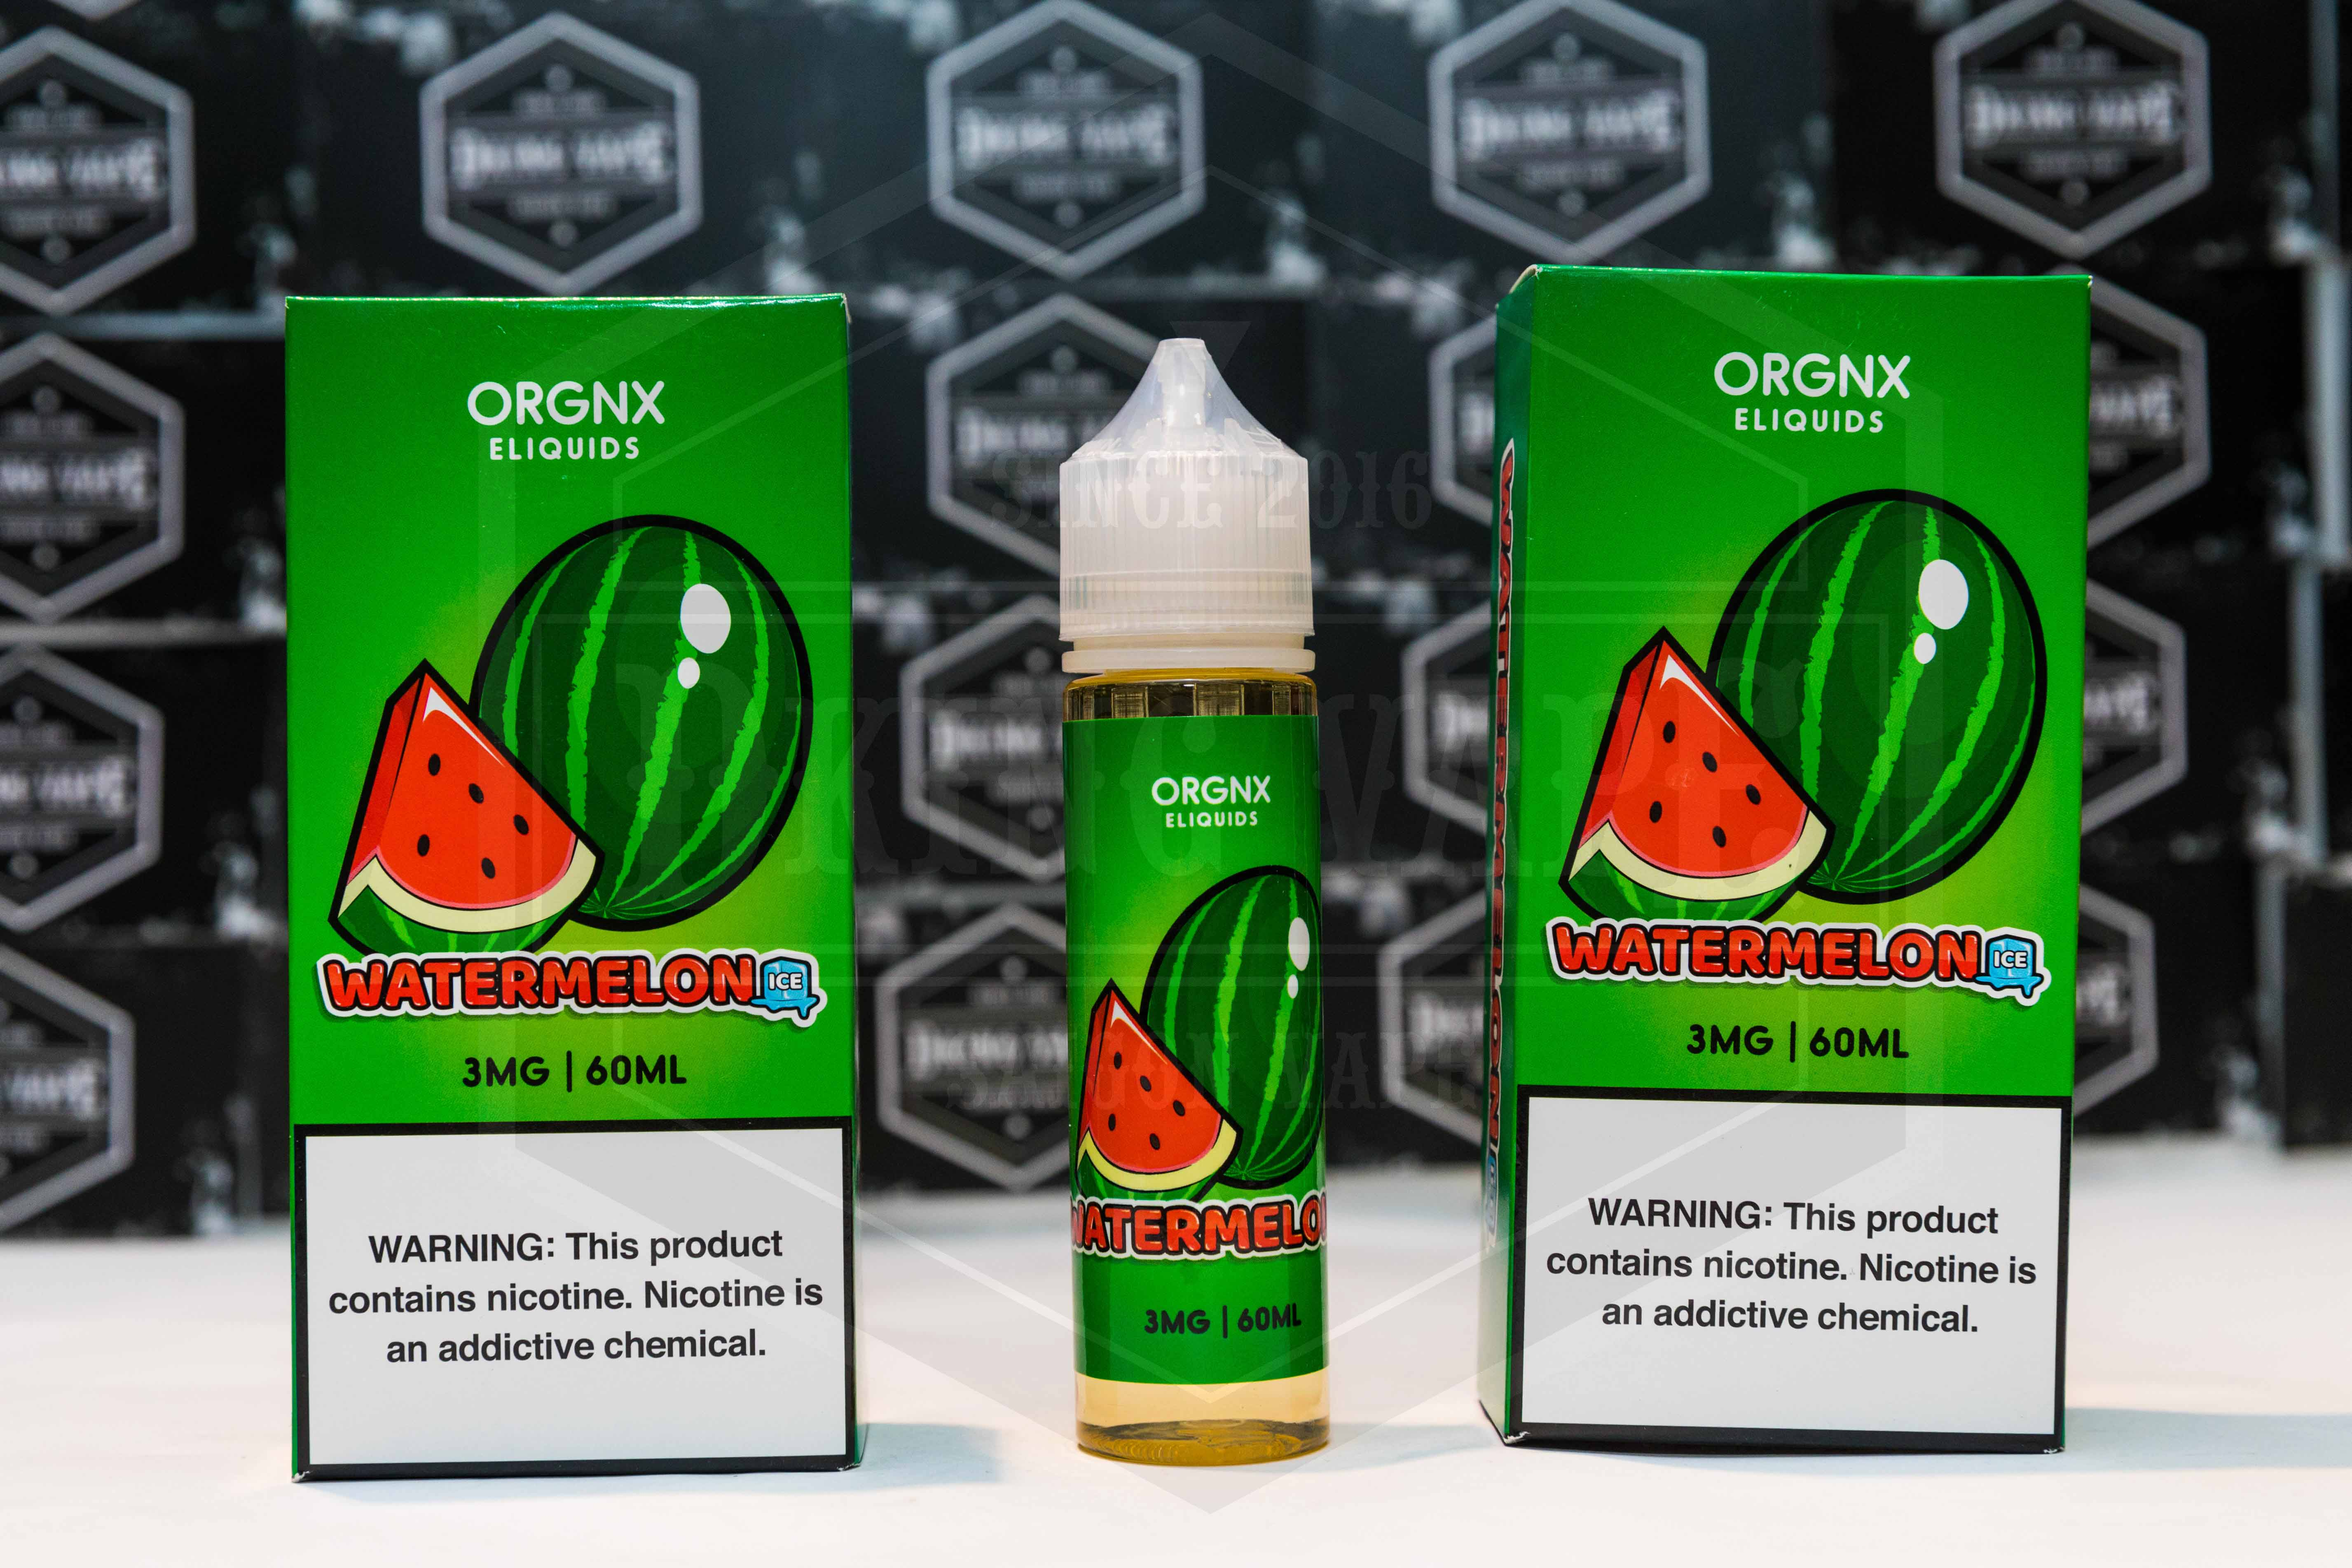 ORGNX Watermelon Ice